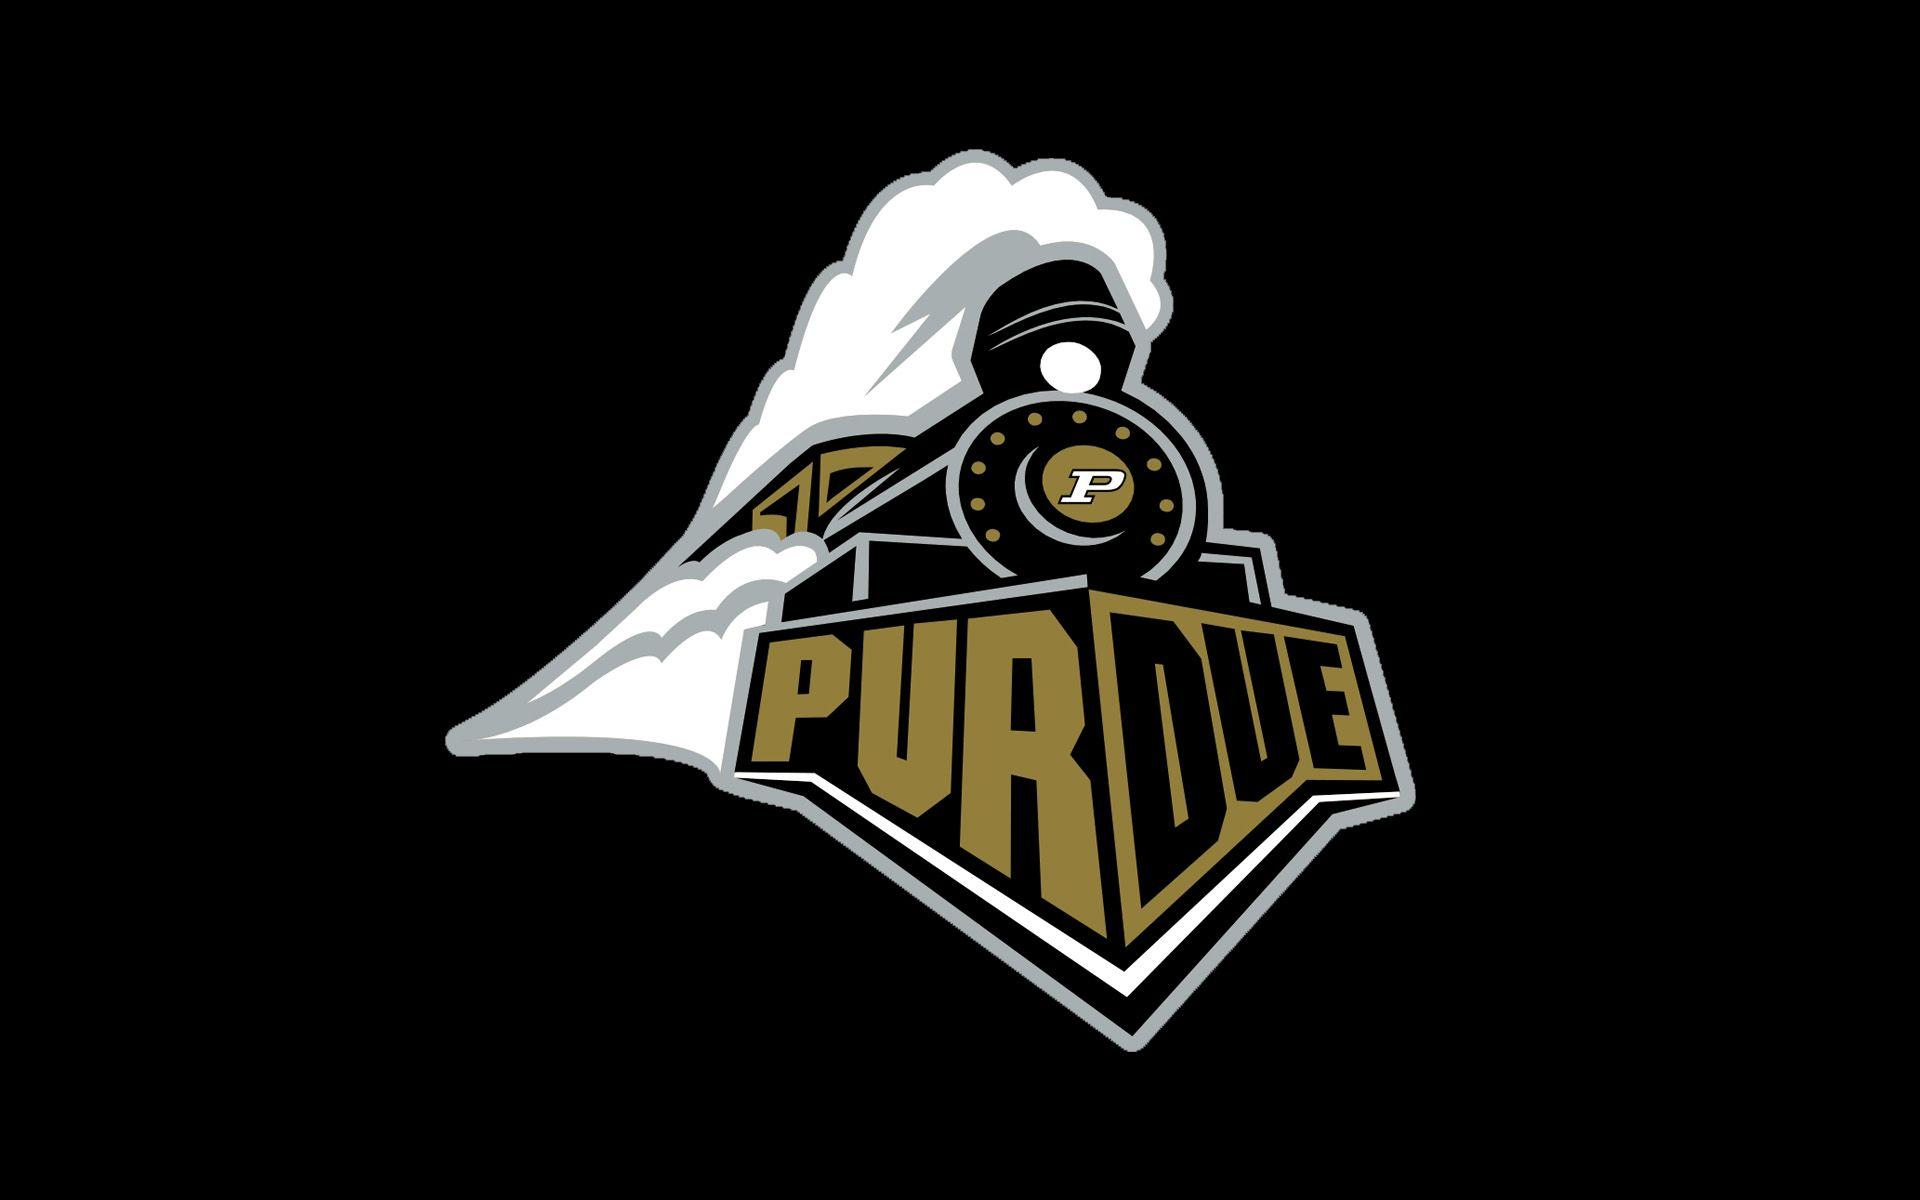 Purdue Wallpapers 1920x1200